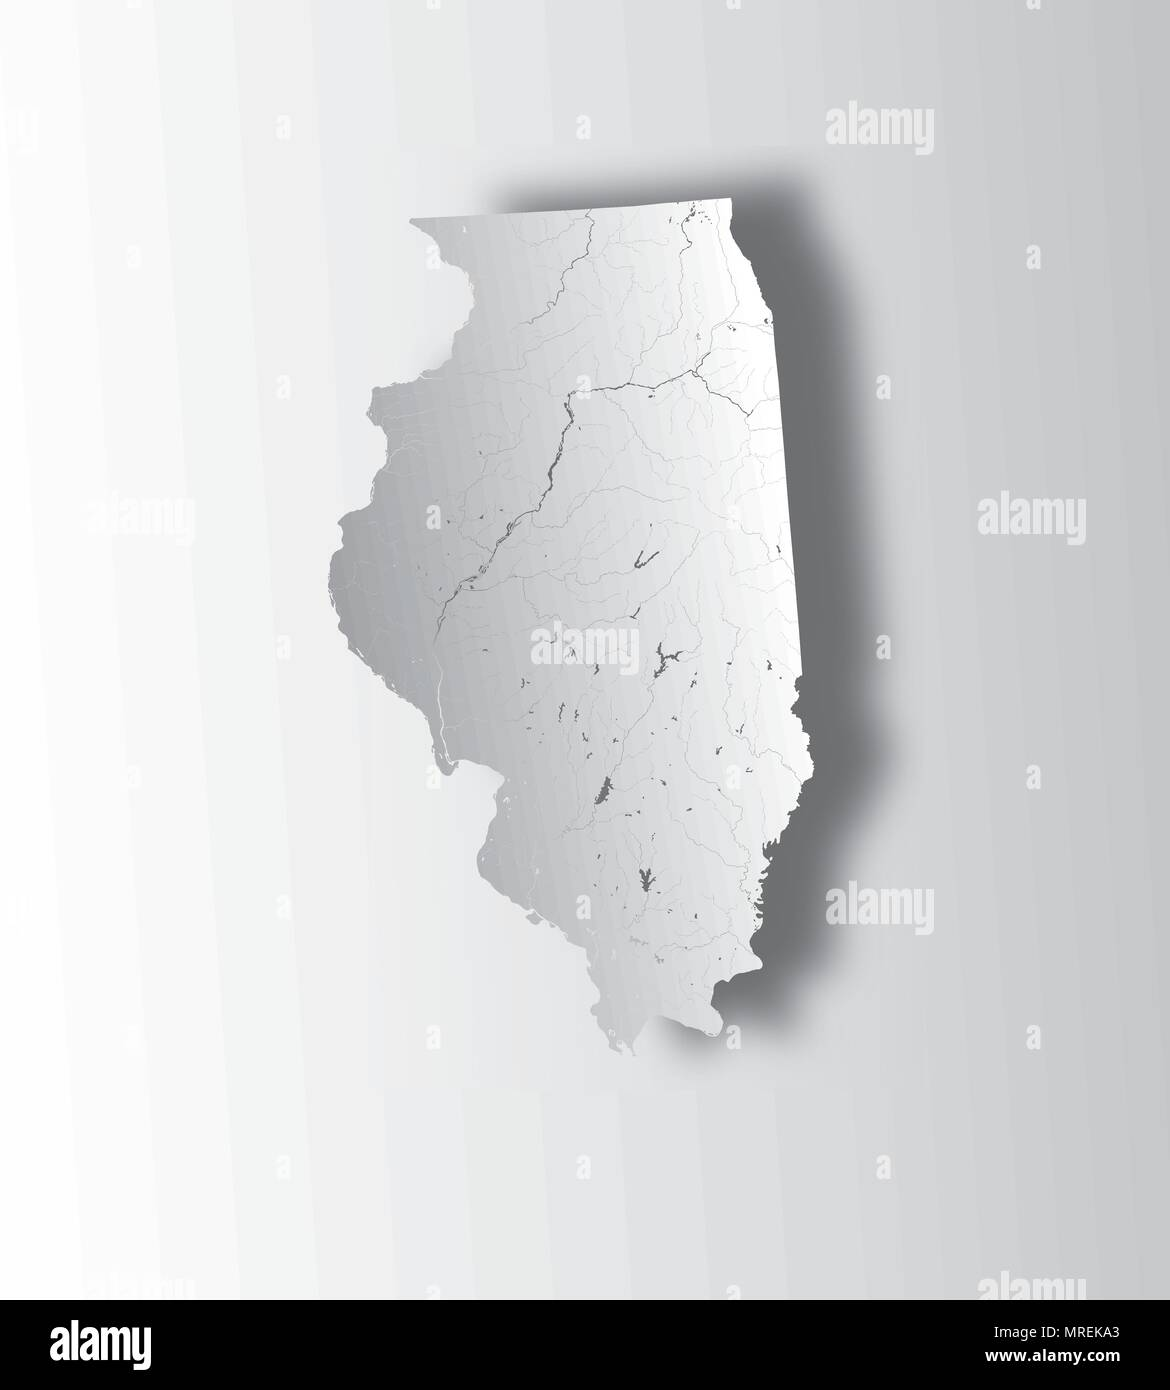 U.S. states - map of Illinois state with paper cut effect. Hand made. Rivers and lakes are shown. Please look at my other images of cartographic serie - Stock Vector